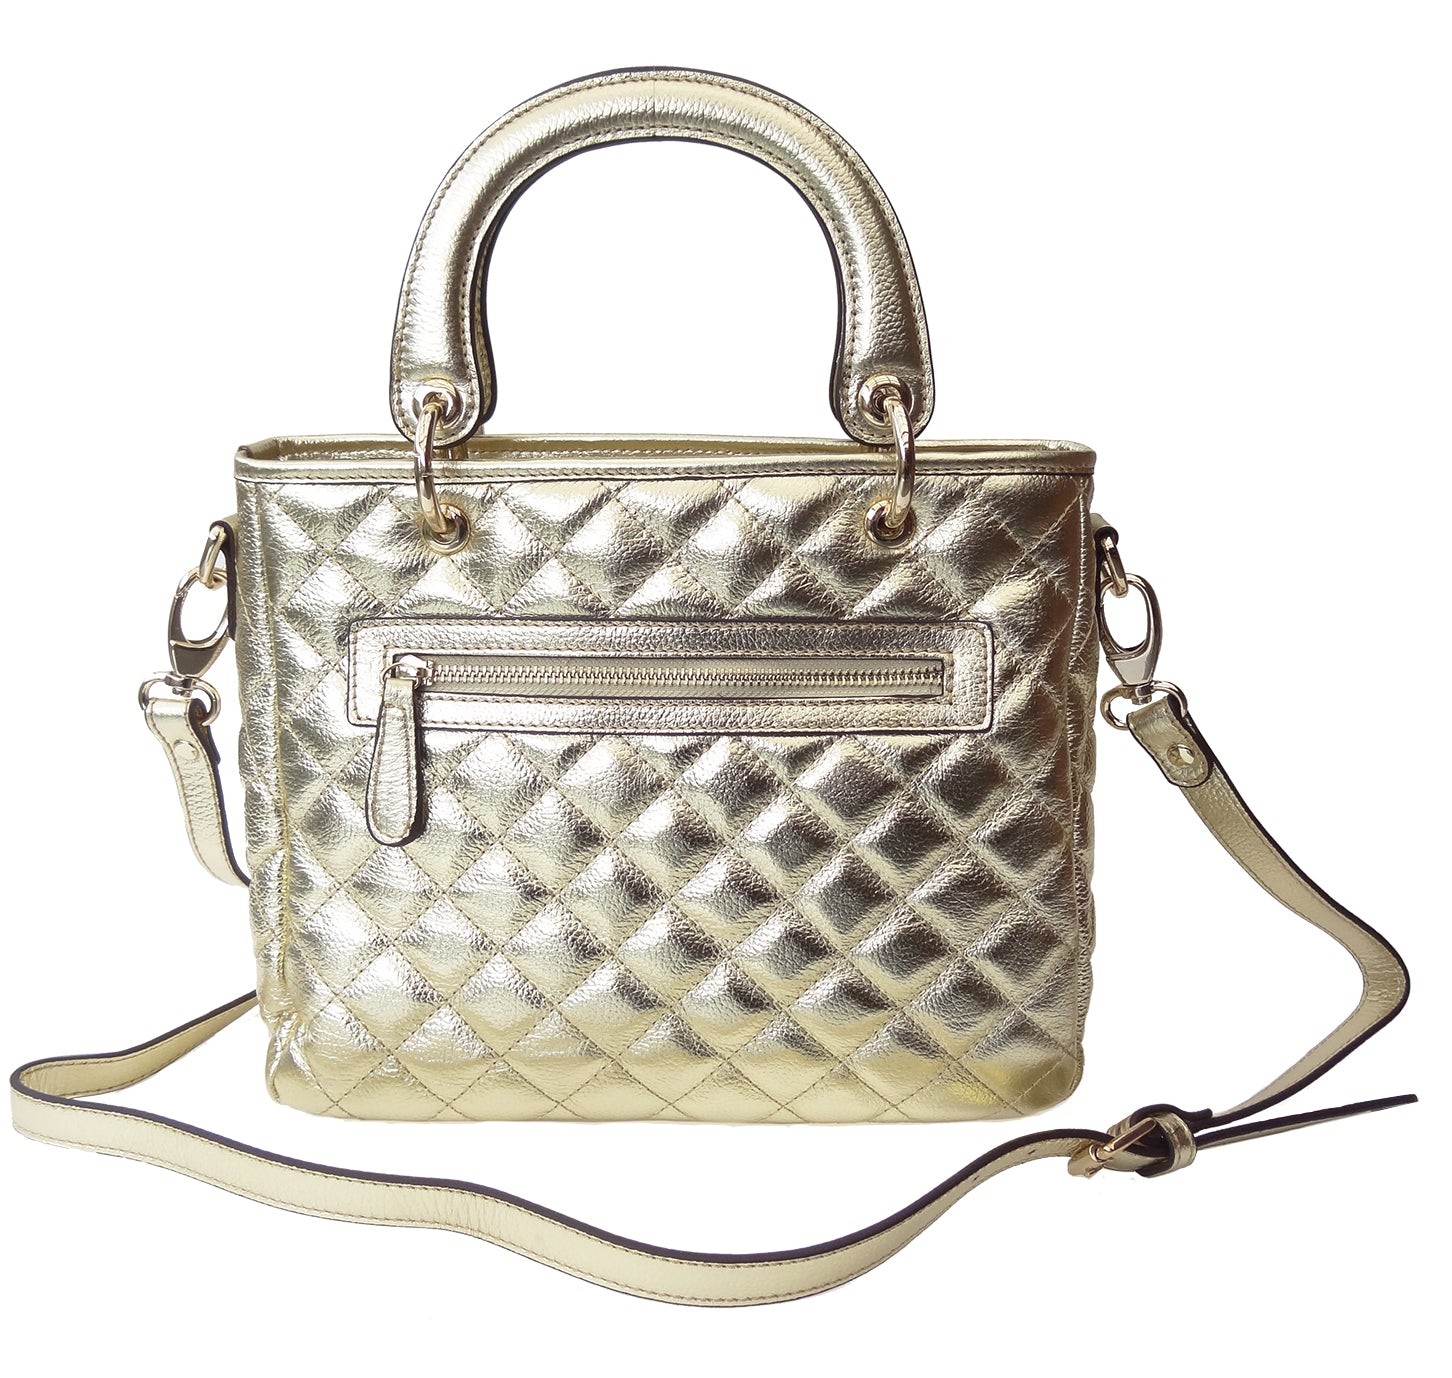 'PARIS' quilted leather bag